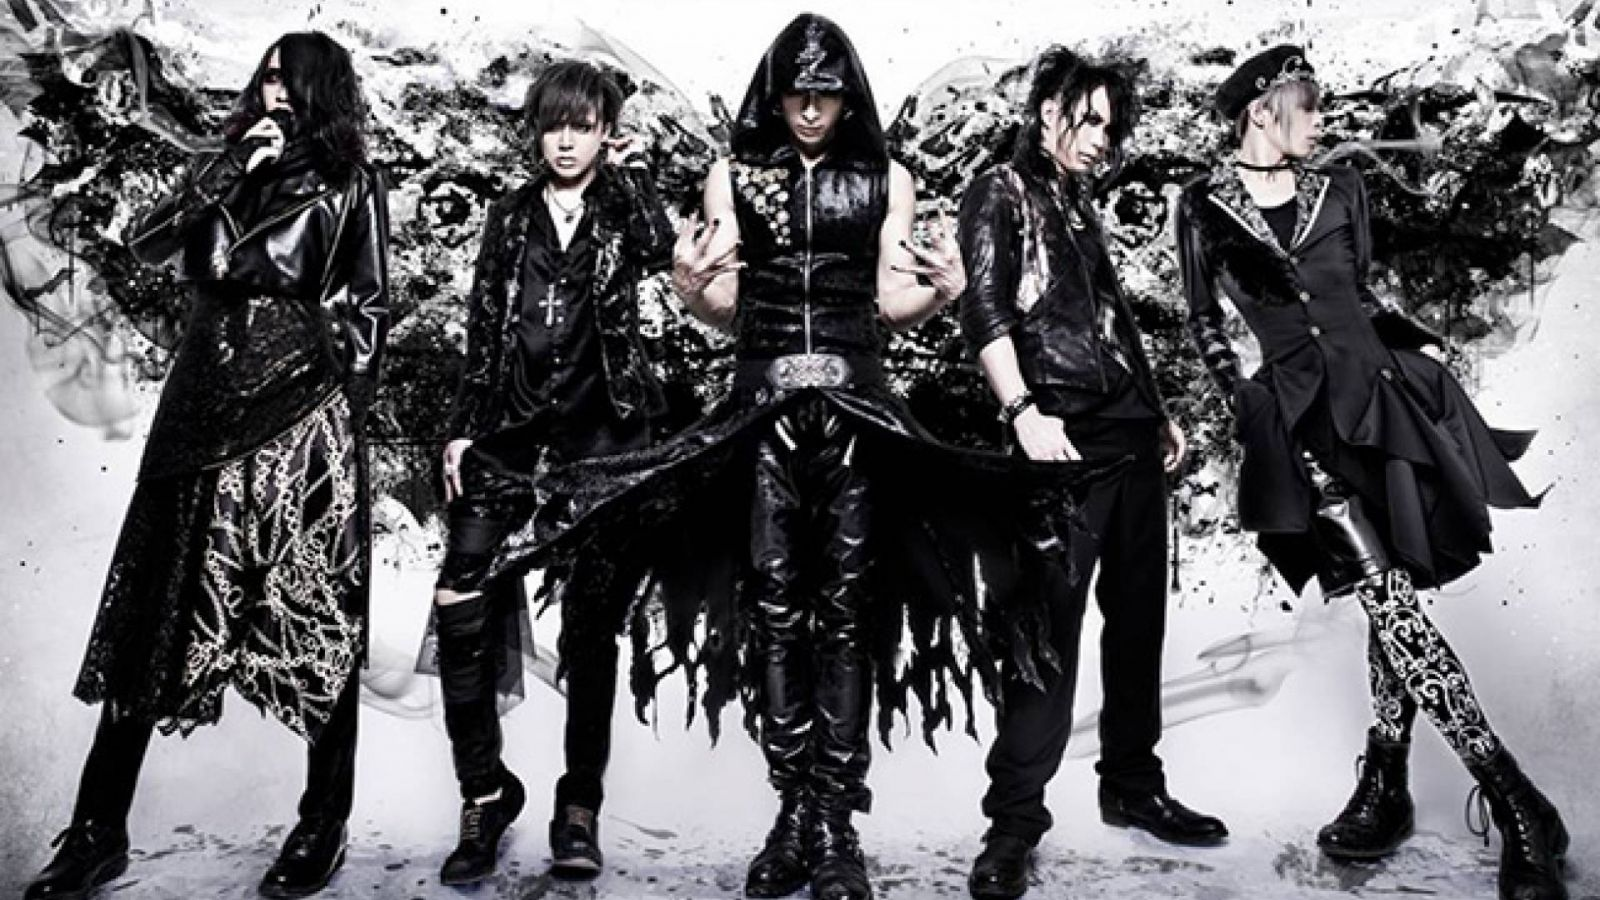 NOCTURNAL BLOODLUST Announces Additional Show for European Tour © NOCTURNAL BLOODLUST